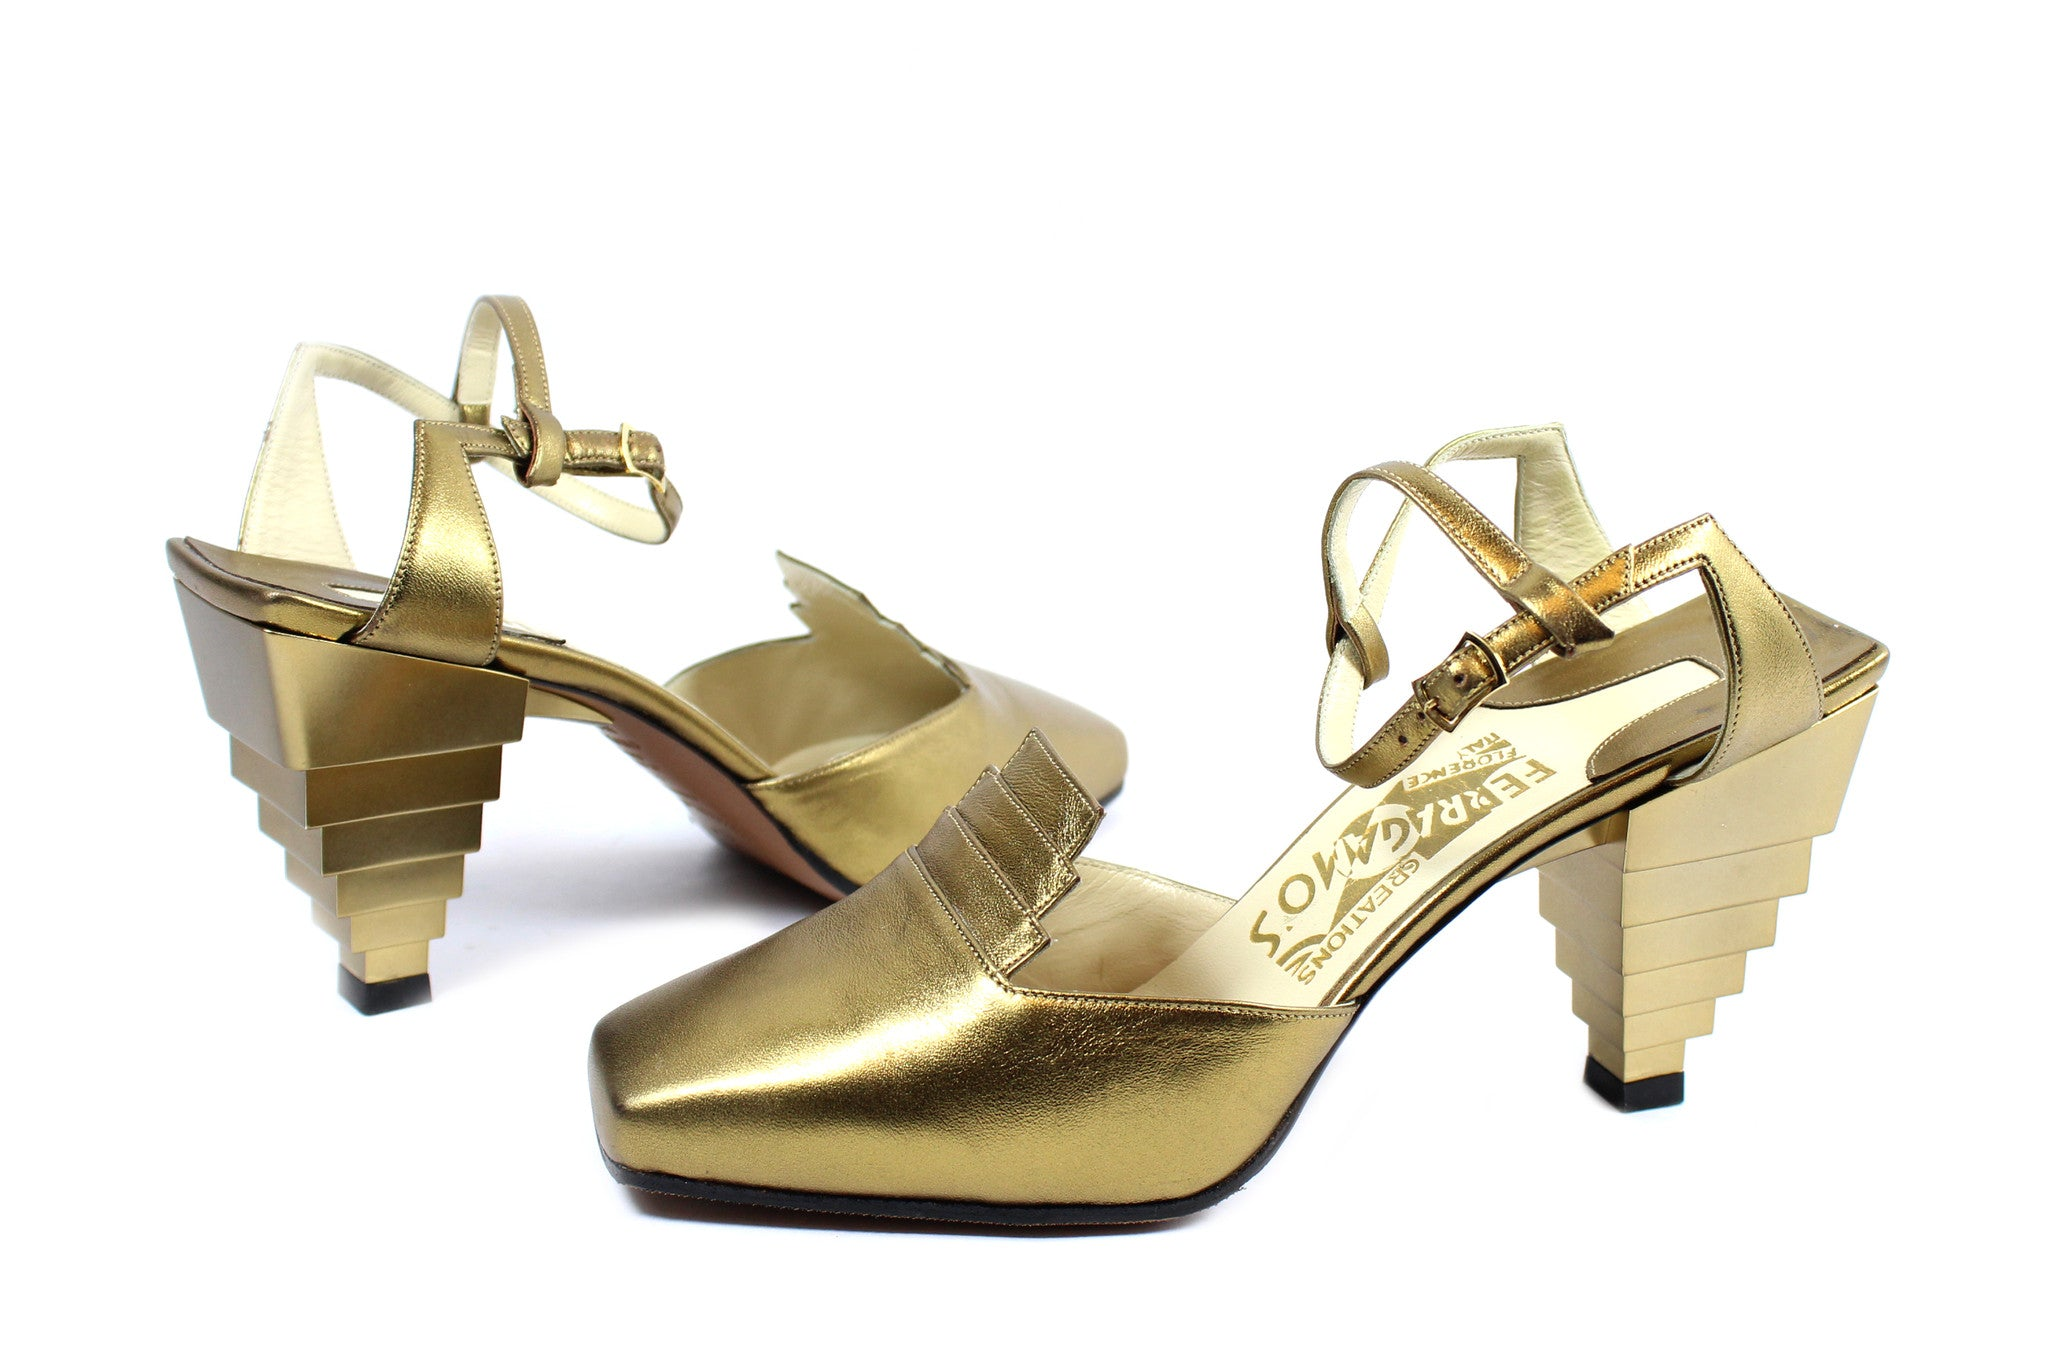 Salvatore Ferragamo 1930s Gold Pyramid Sandals (Size 6) - Encore Consignment - 2